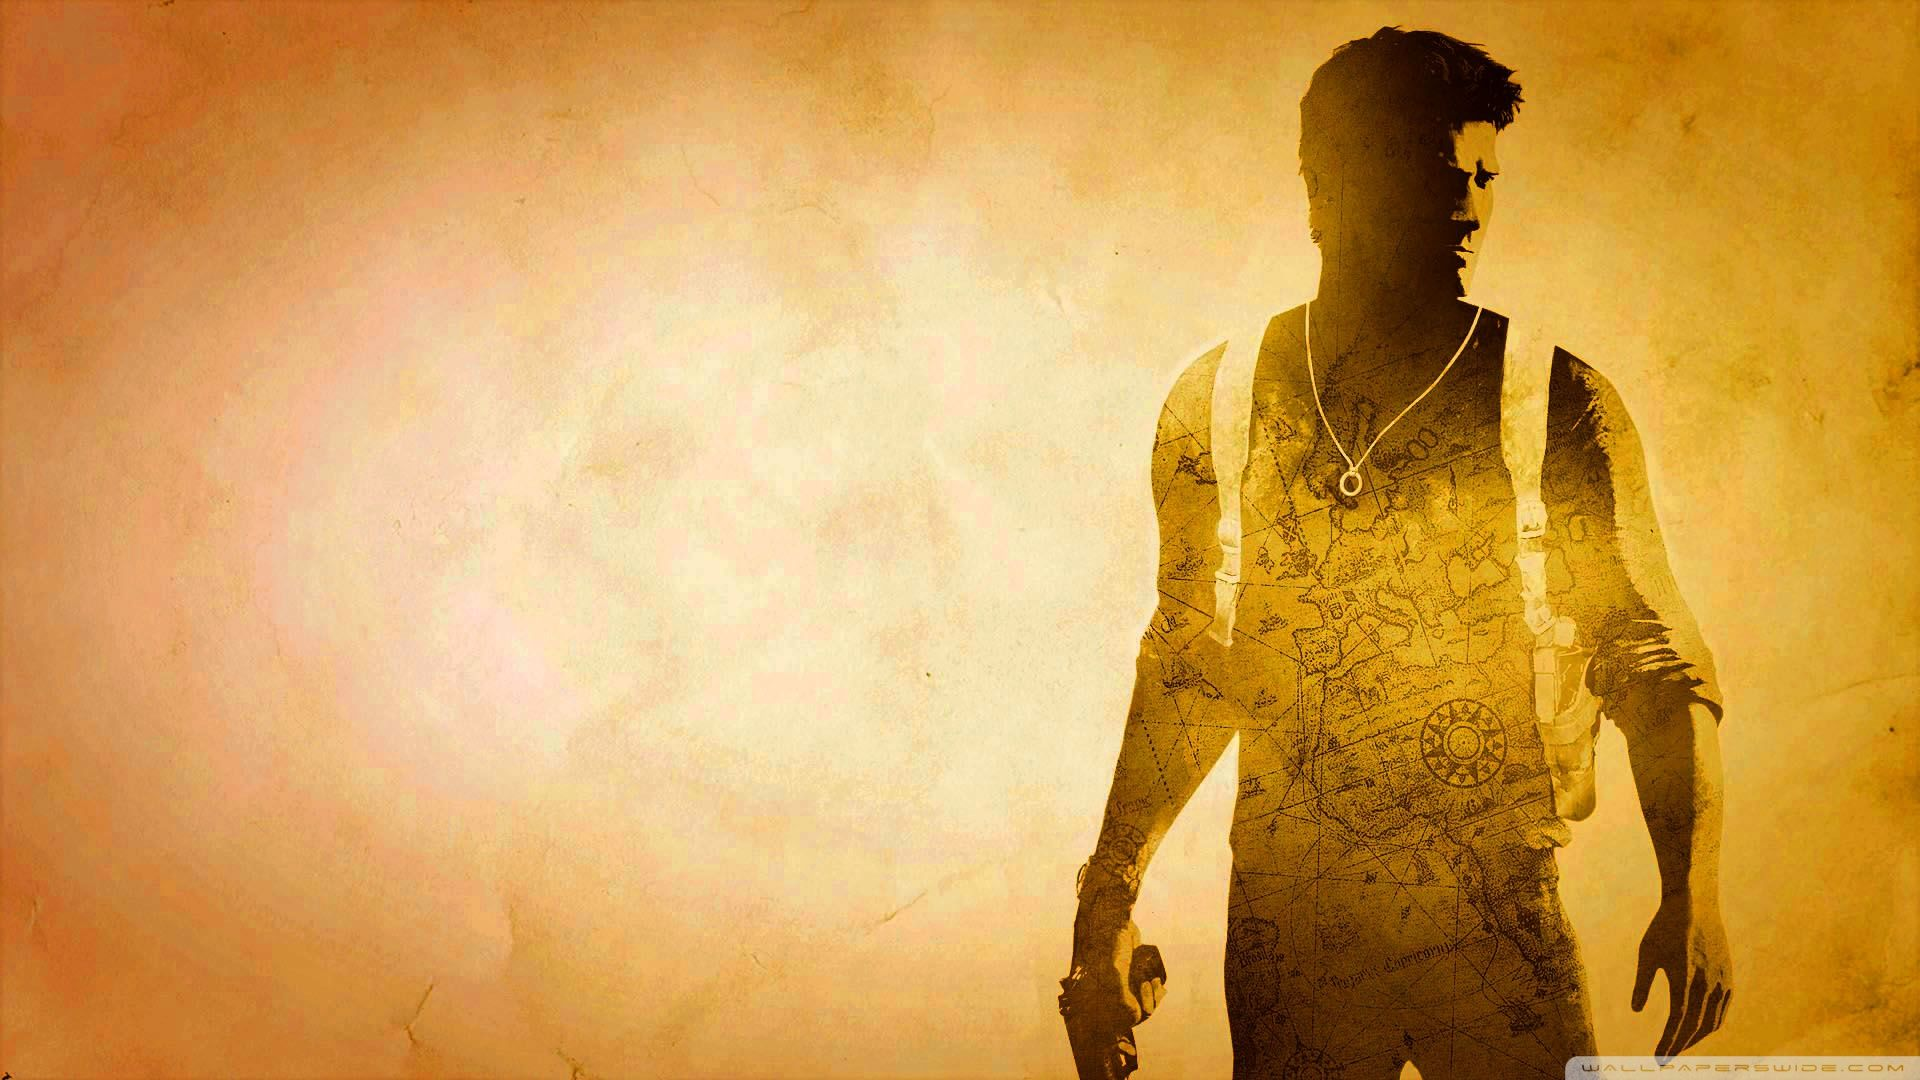 Uncharted wallpapers top free uncharted backgrounds - Uncharted wallpaper ...